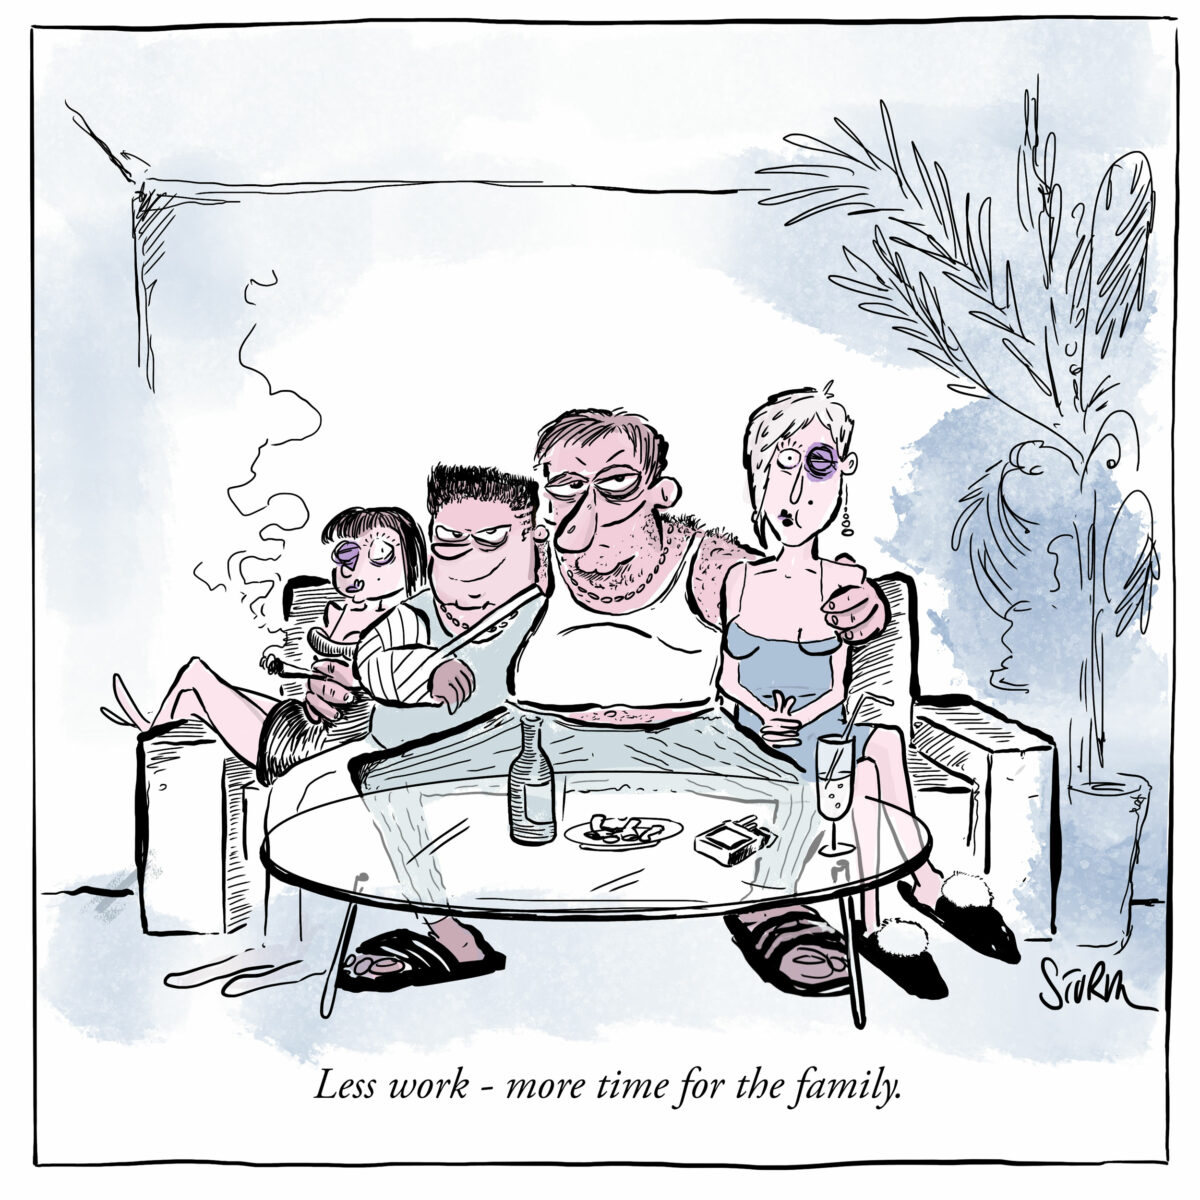 Less work - more time for the family, Cartoon by Philipp Sturm